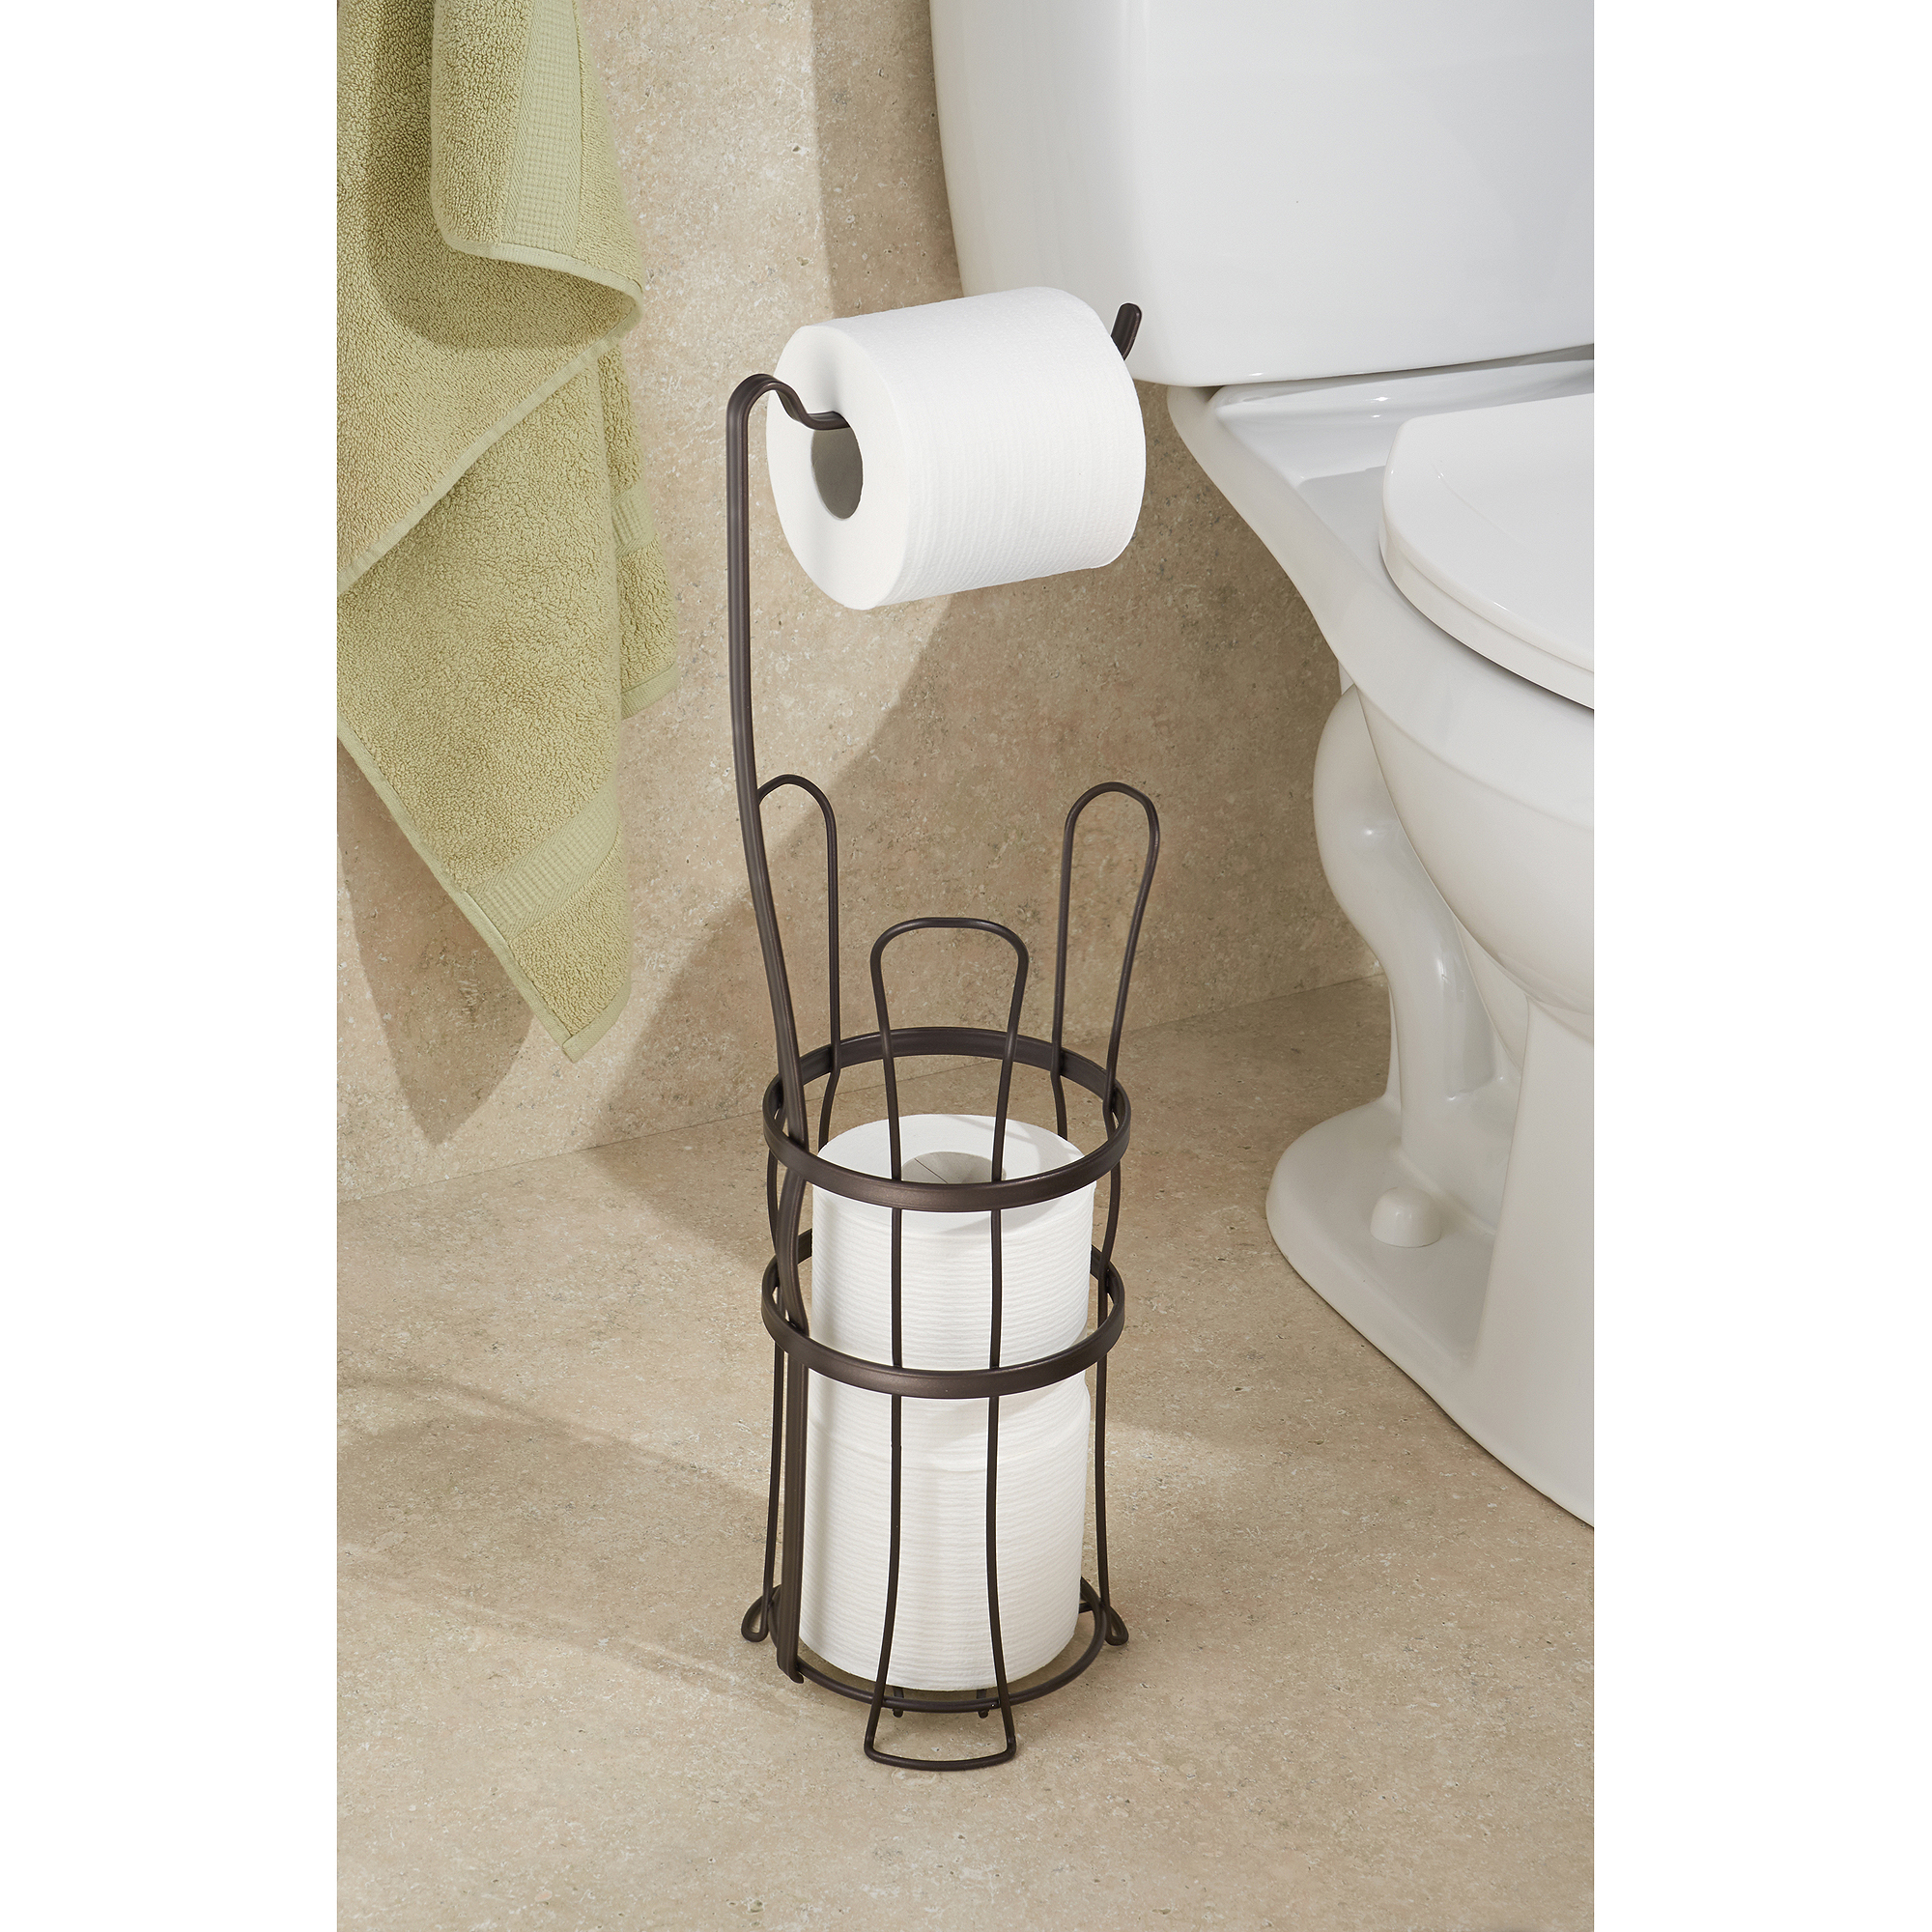 100 Strong Man Toilet Paper Holder Home Design Toilet Paper Holders Tissue Signature